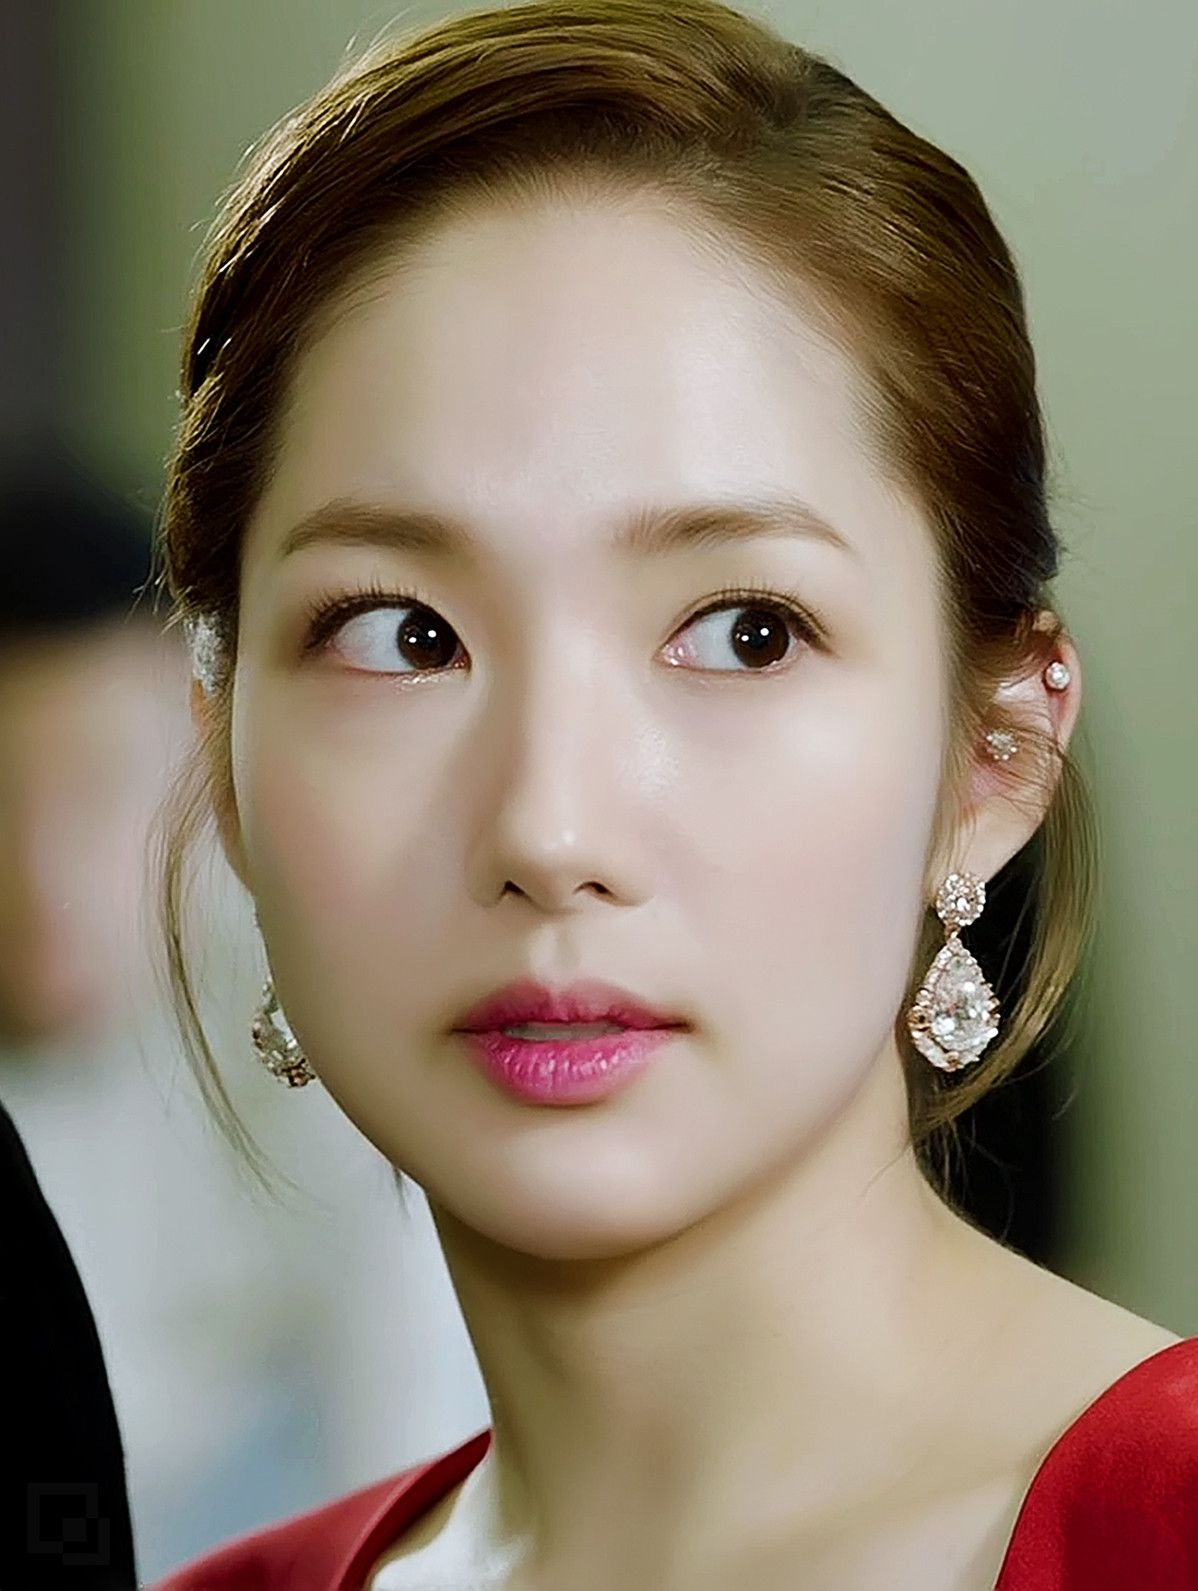 Park Min Young's character transformed, in a scene from